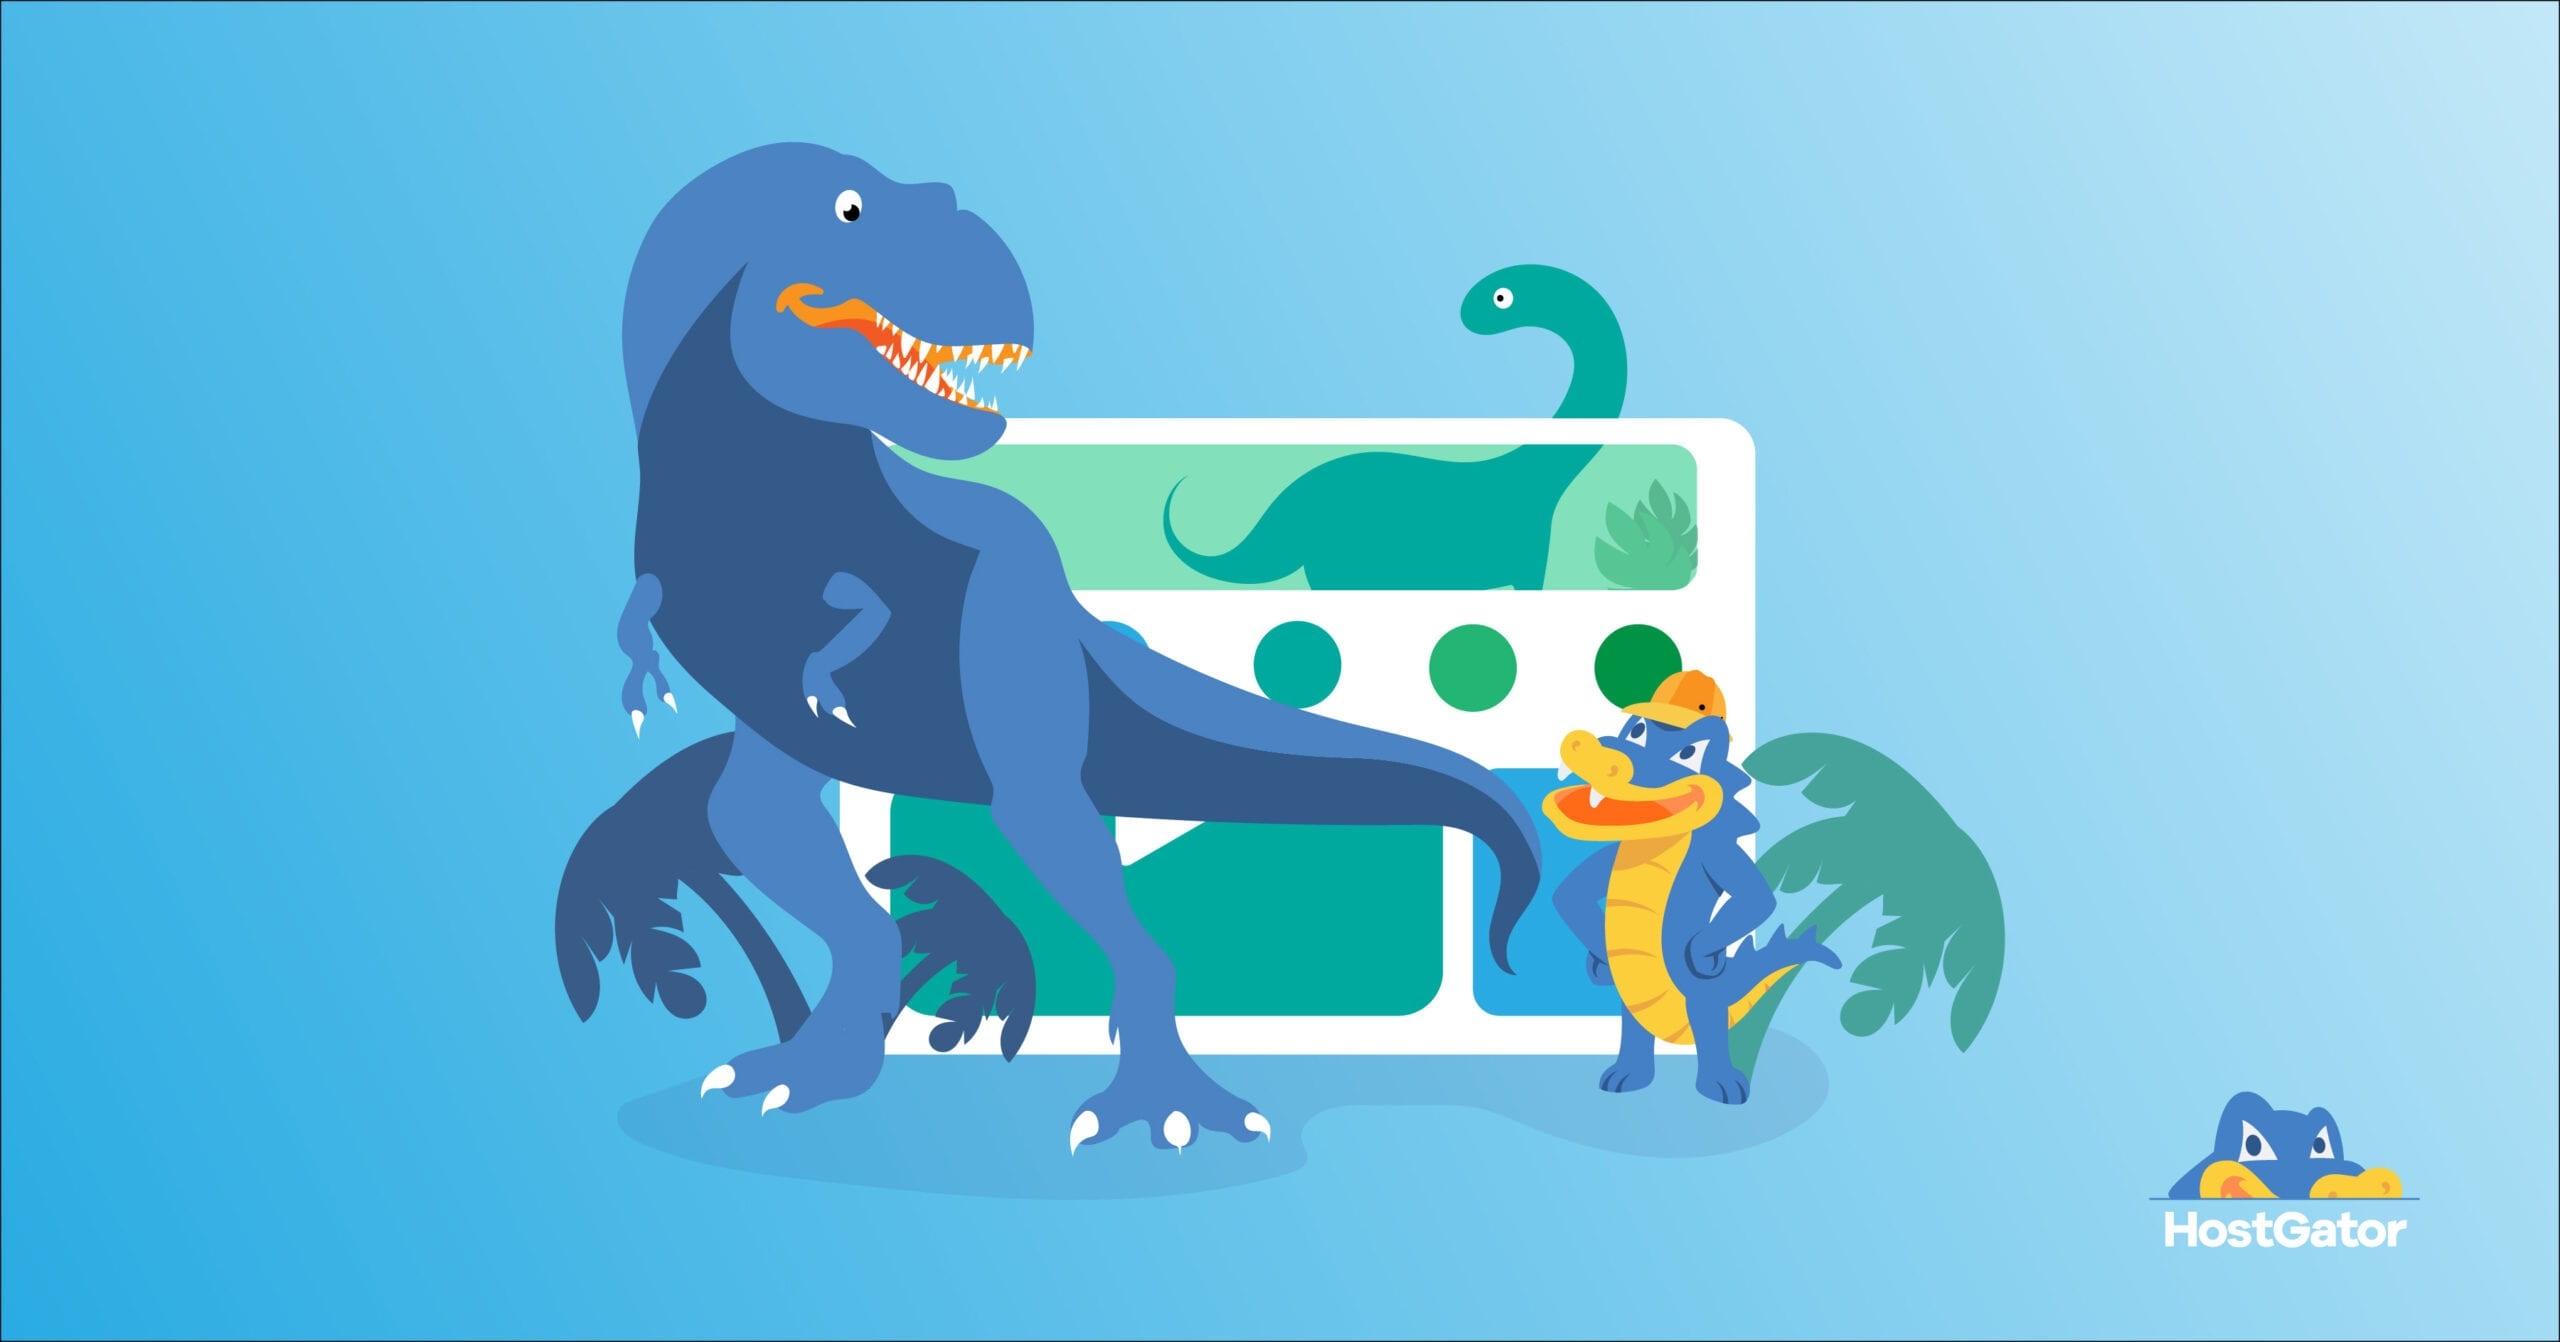 Great Design Finds a Way: 5 Things That Make the Jurassic World Website Awesome